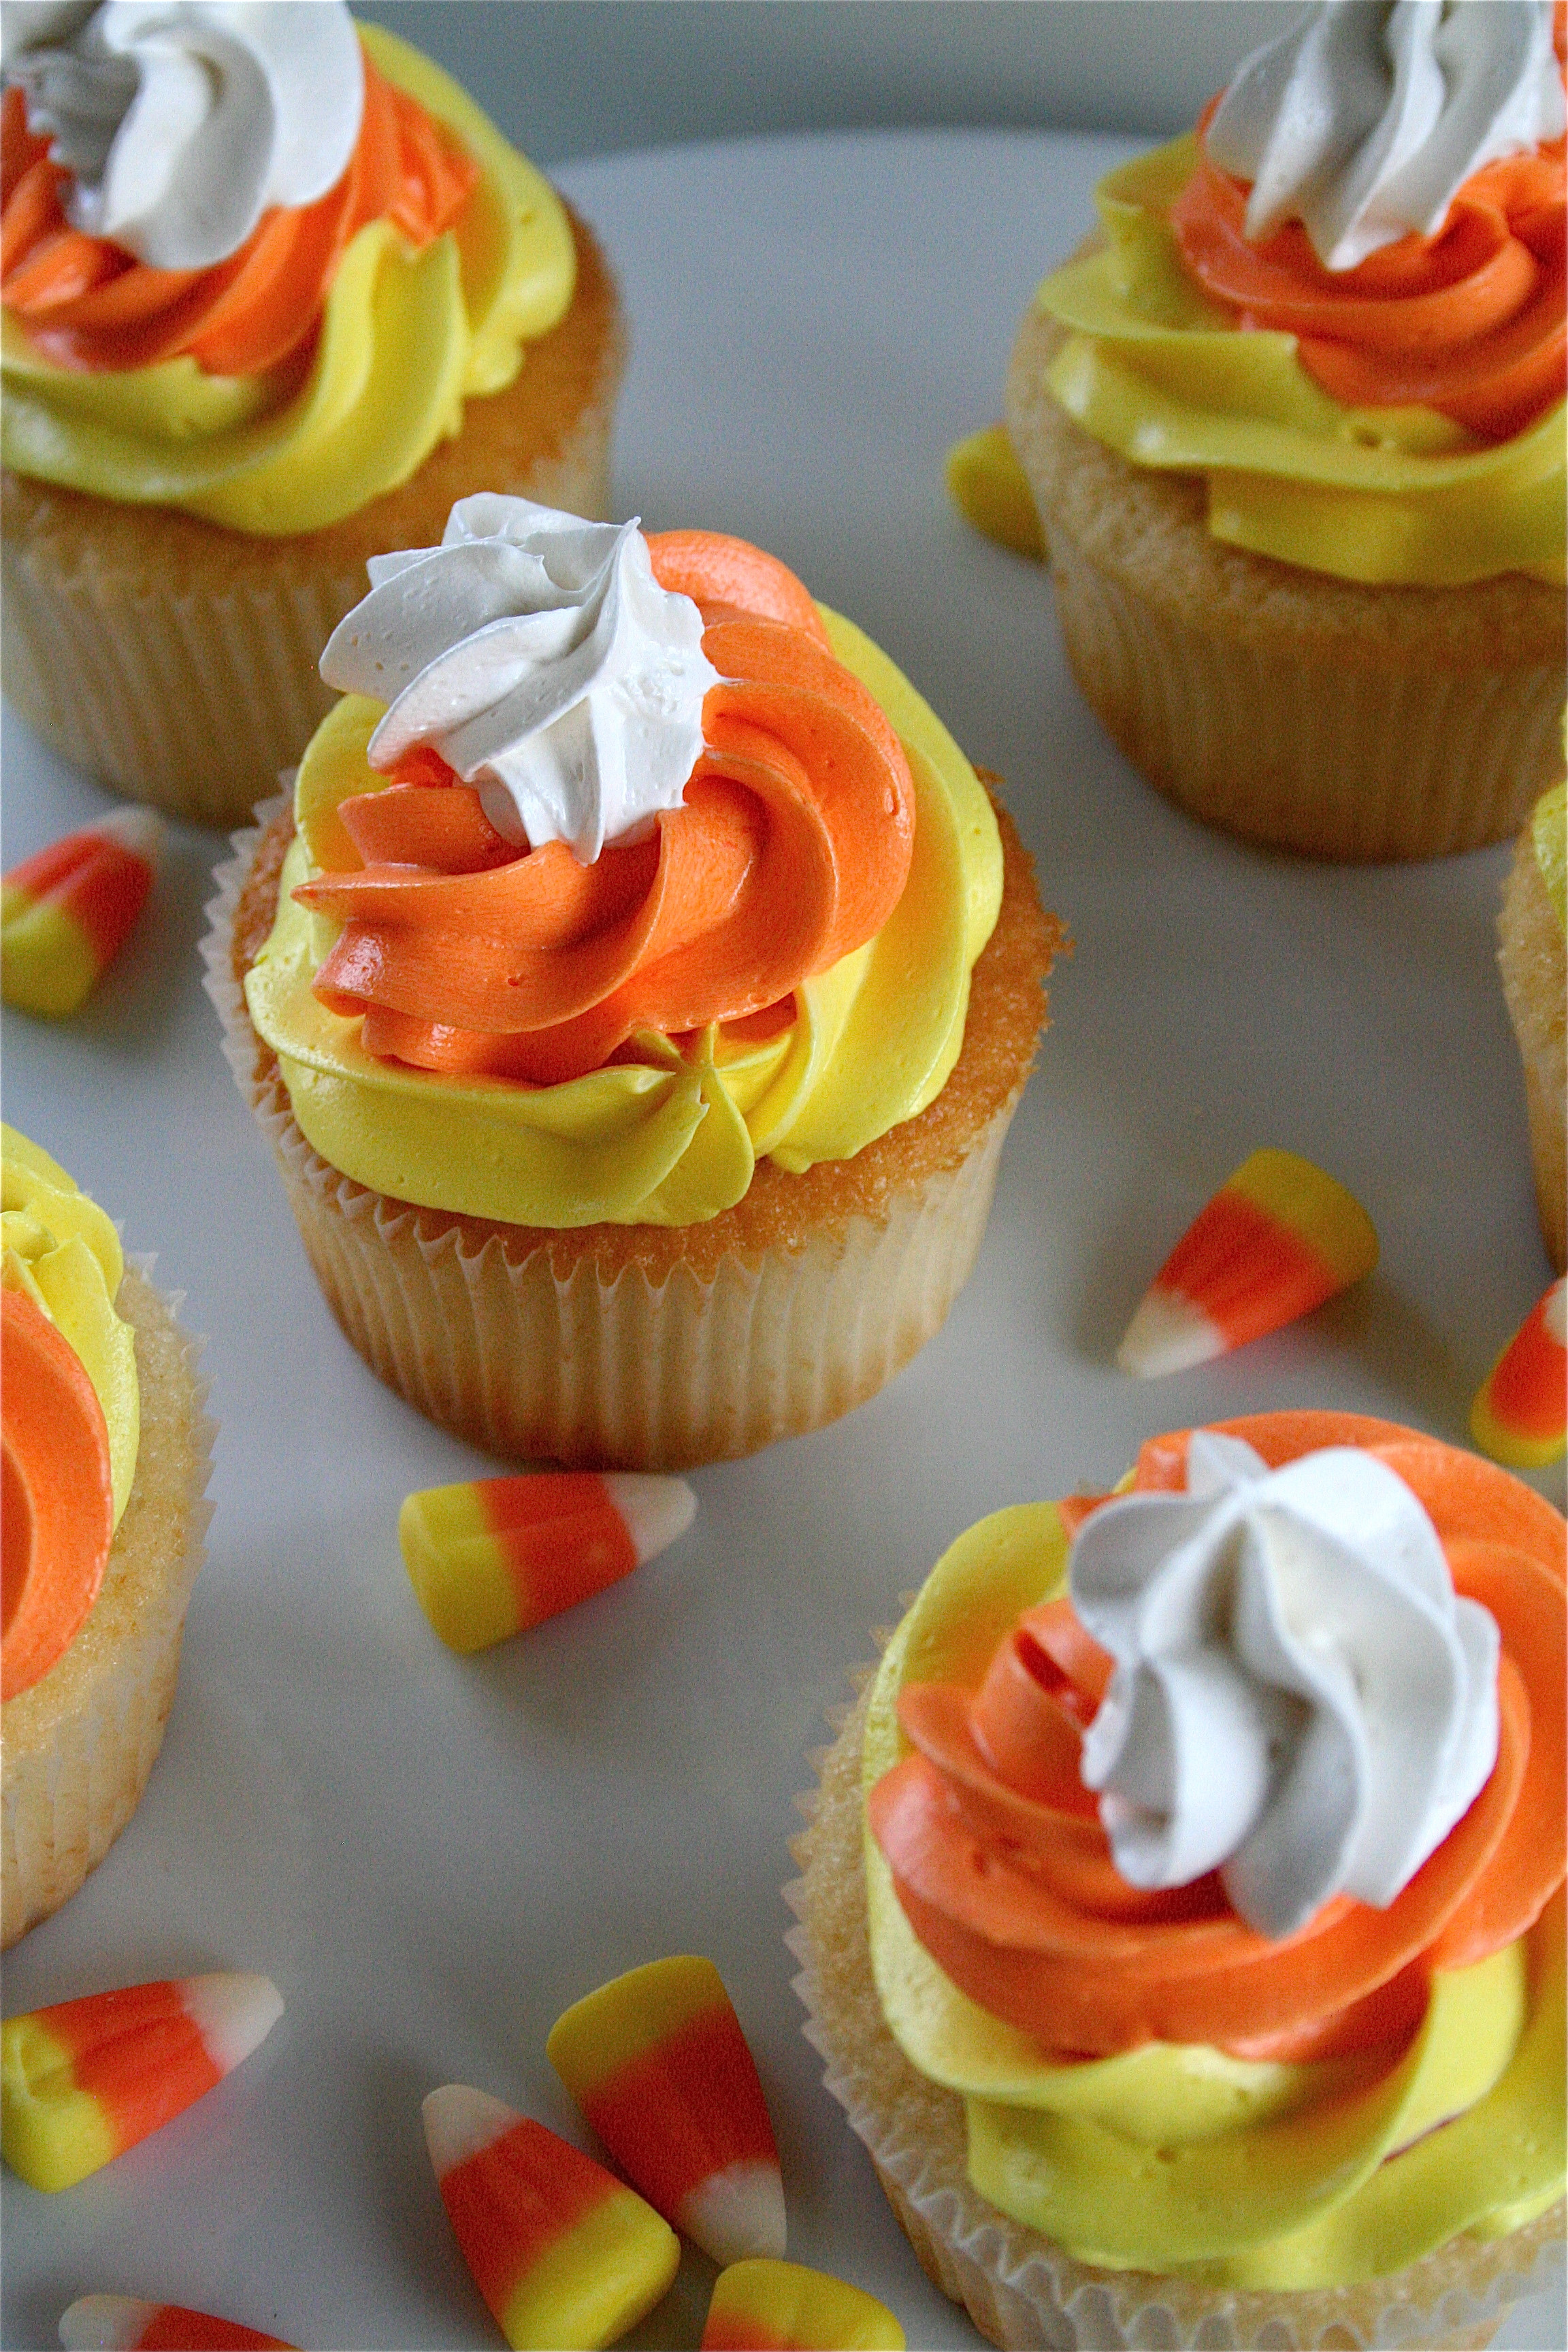 Halloween Cupcakes Images  28 Cute Halloween Cupcakes Easy Recipes for Halloween